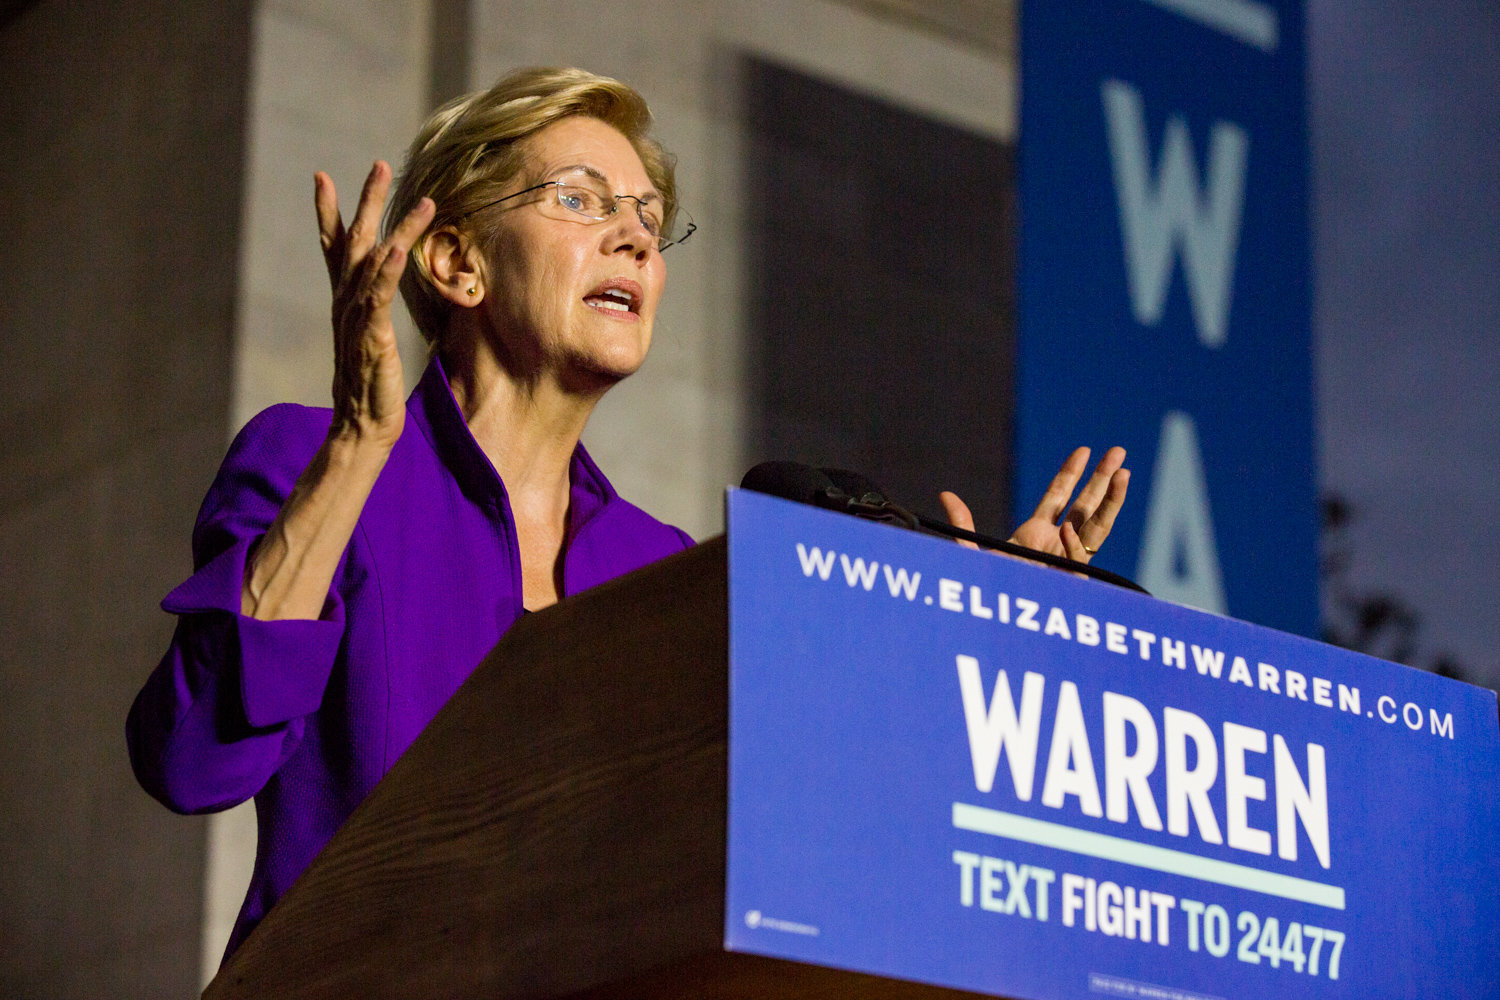 Unaffiliated voters who want to vote for Massachusetts Sen. Elizabeth Warren or any of her challengers in the Democratic primary on April 28 have until Feb. 14 to register with the party. New York is one of 12 states that still have closed primaries.